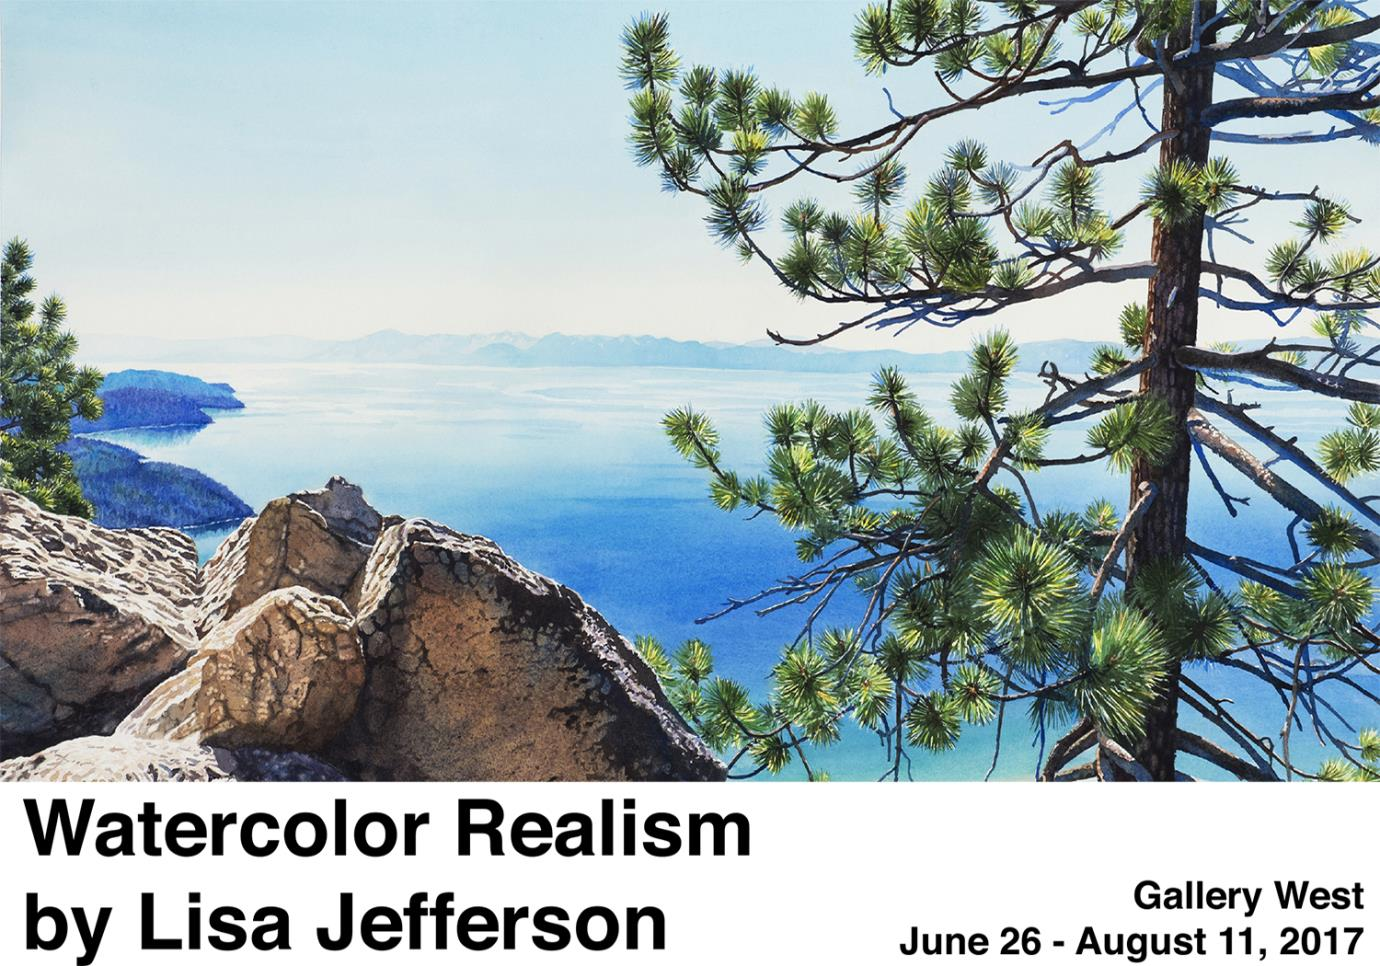 Watercolor painting of Lake Tahoe - blue sky, blue water, with large brown rocks, and a green pine tree; Watercolor Realism by Lisa Jefferson, Gallery West, Artist reception June 26 - August 11